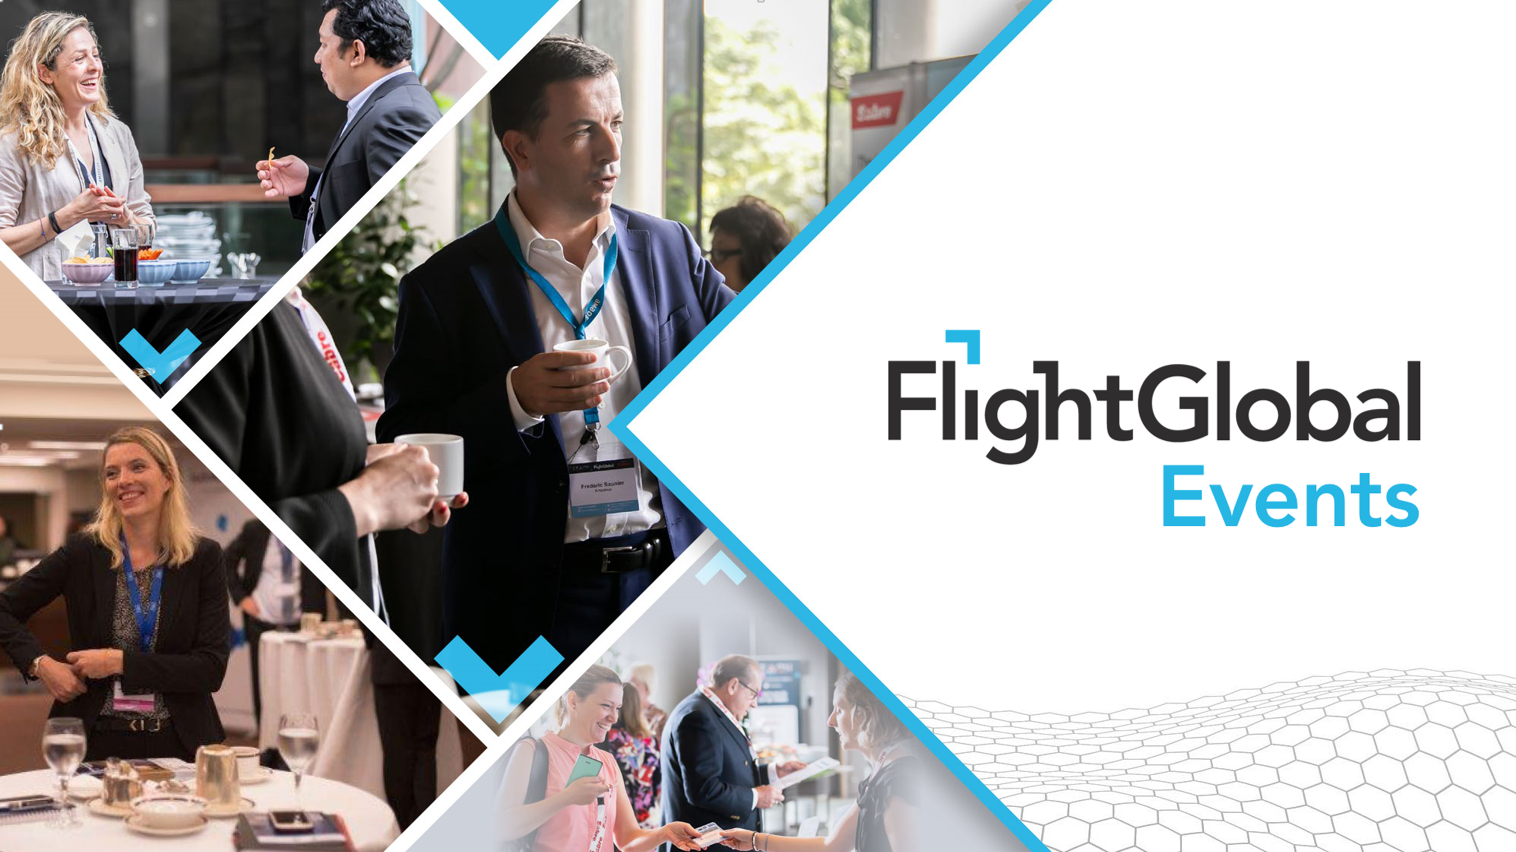 FlightGlobal events image